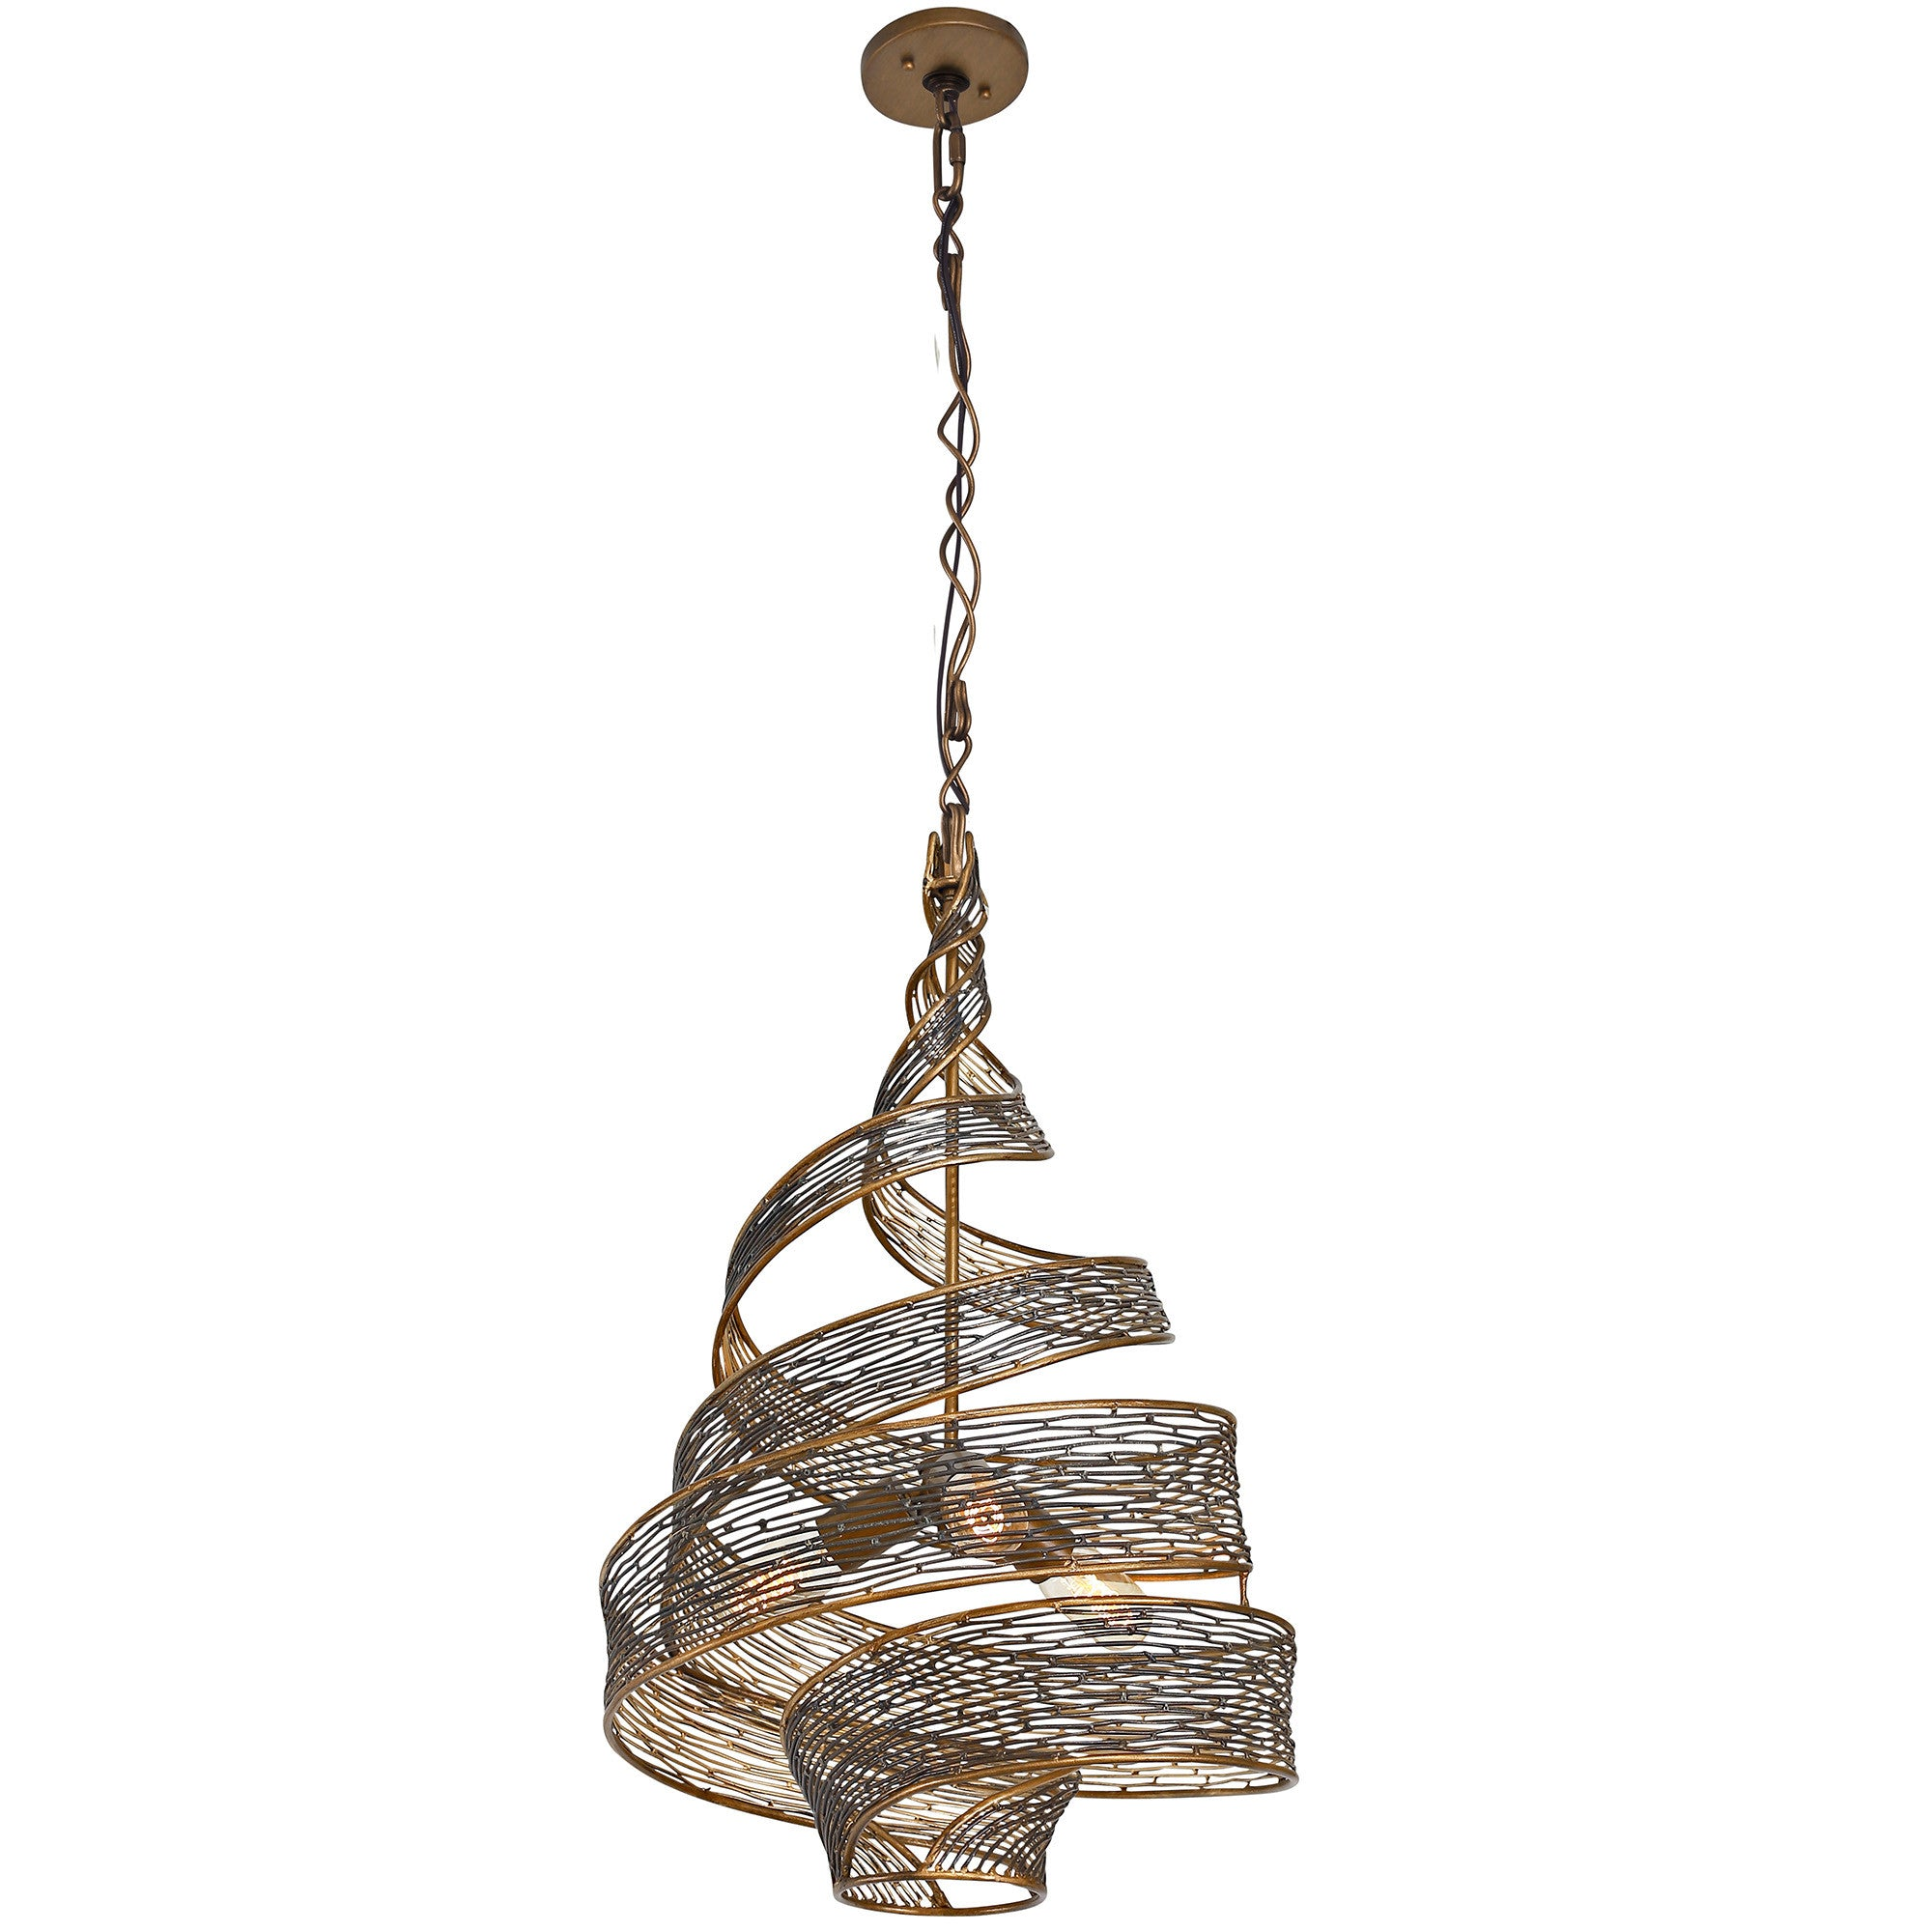 Flow 240P03HO 3-Lt Twist Pendant - Hammered Ore